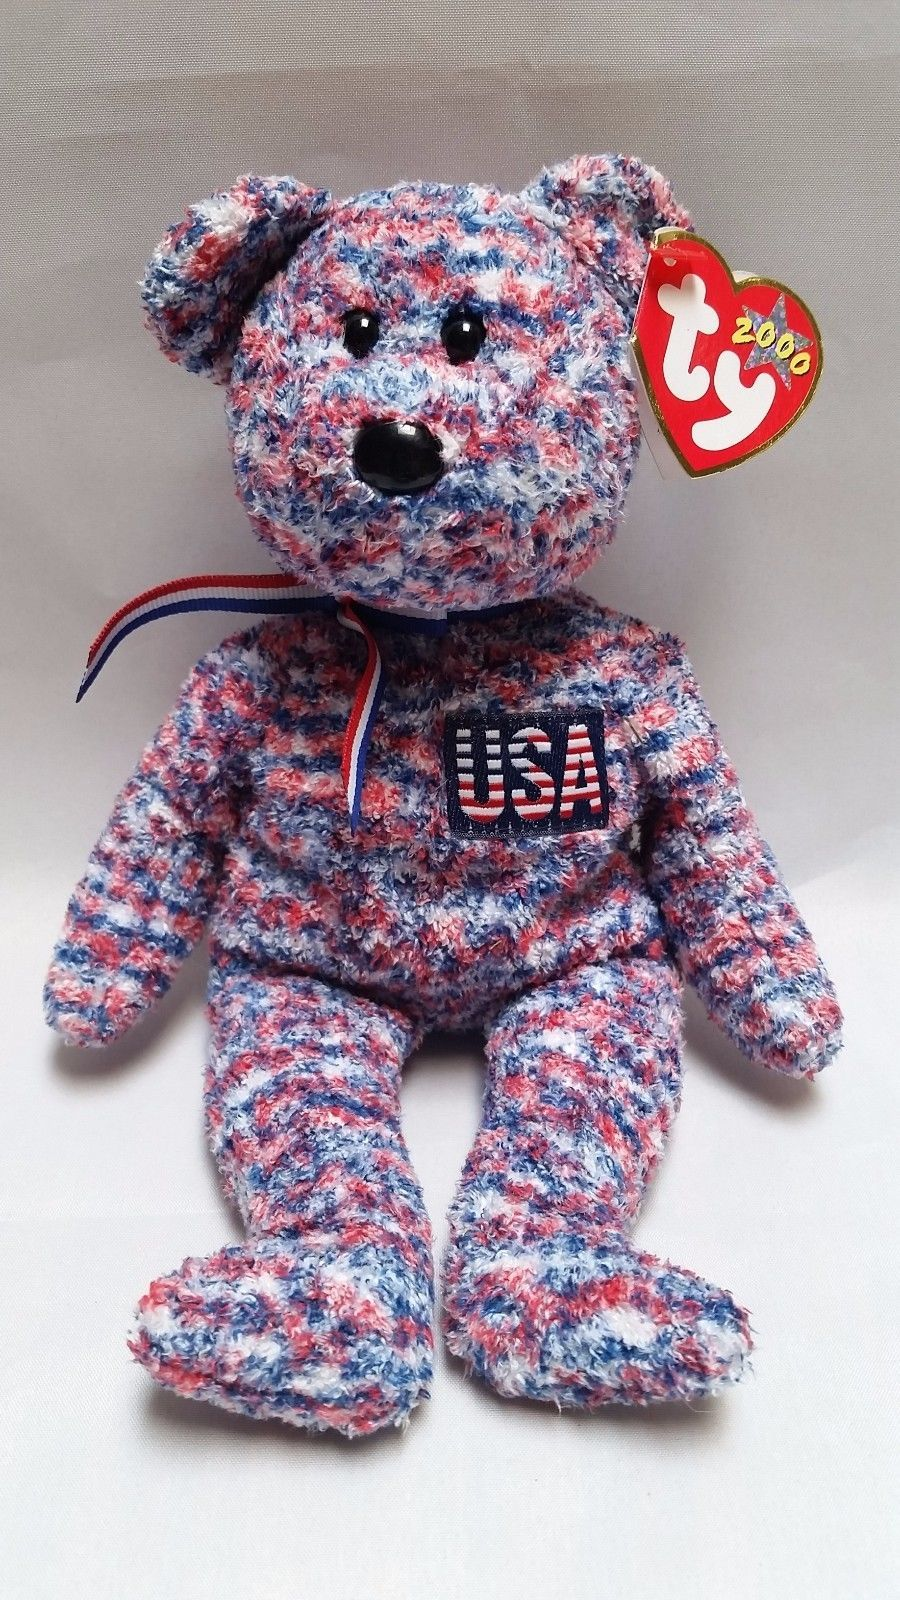 fdd6f990ced S l1600. S l1600. Previous. Ty Beanie Baby USA Bear Babies Patriotic  Retired Stuffed Animal Plush ...